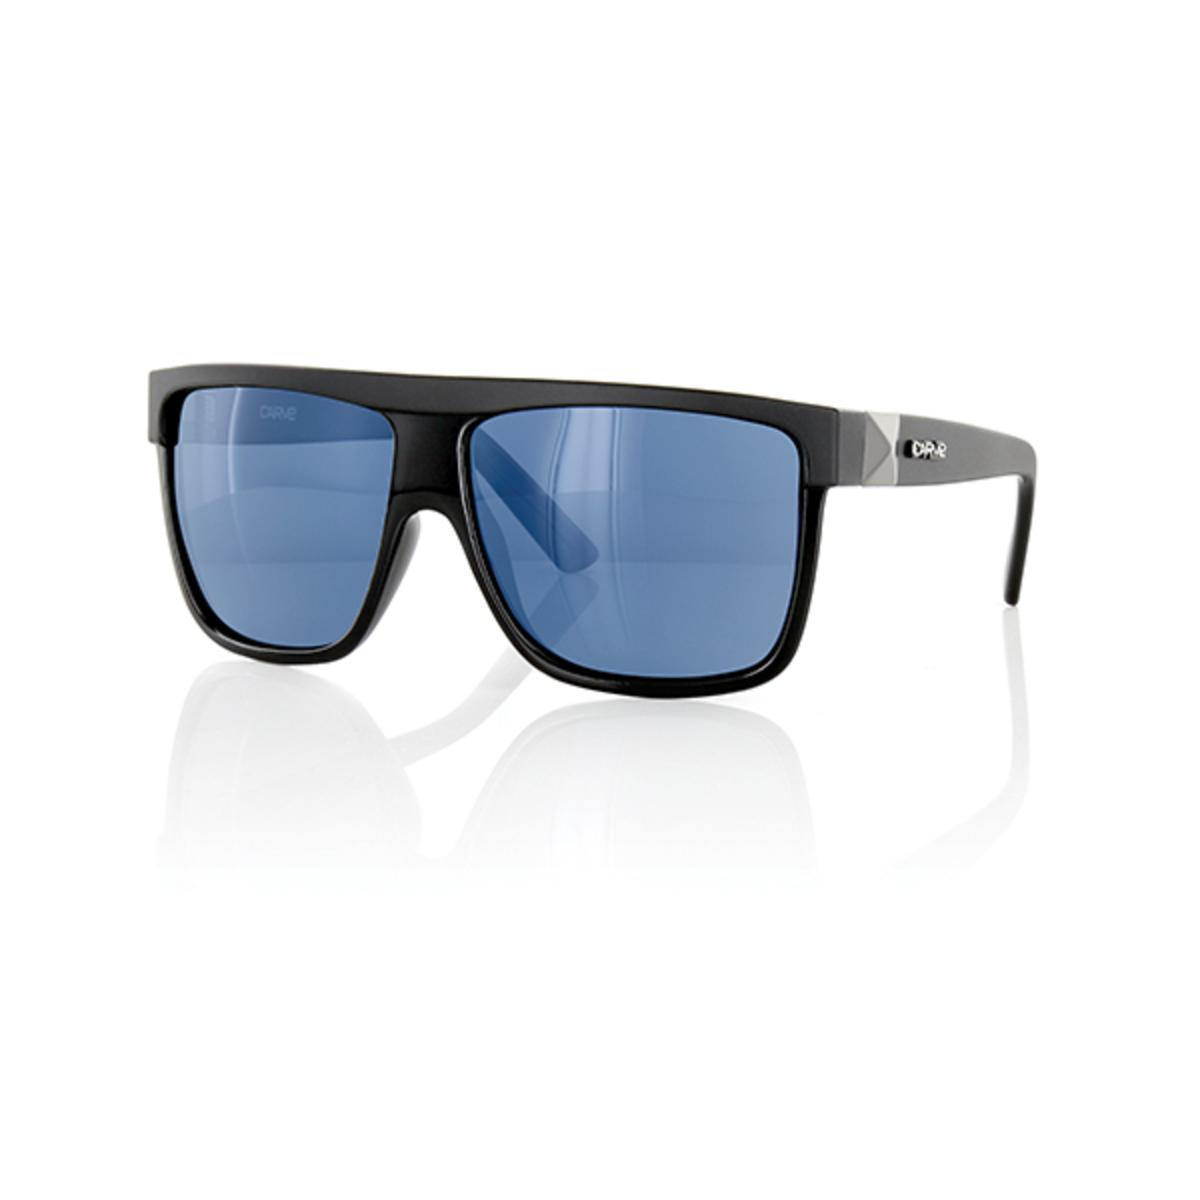 CARVE Rocker Sunglasses